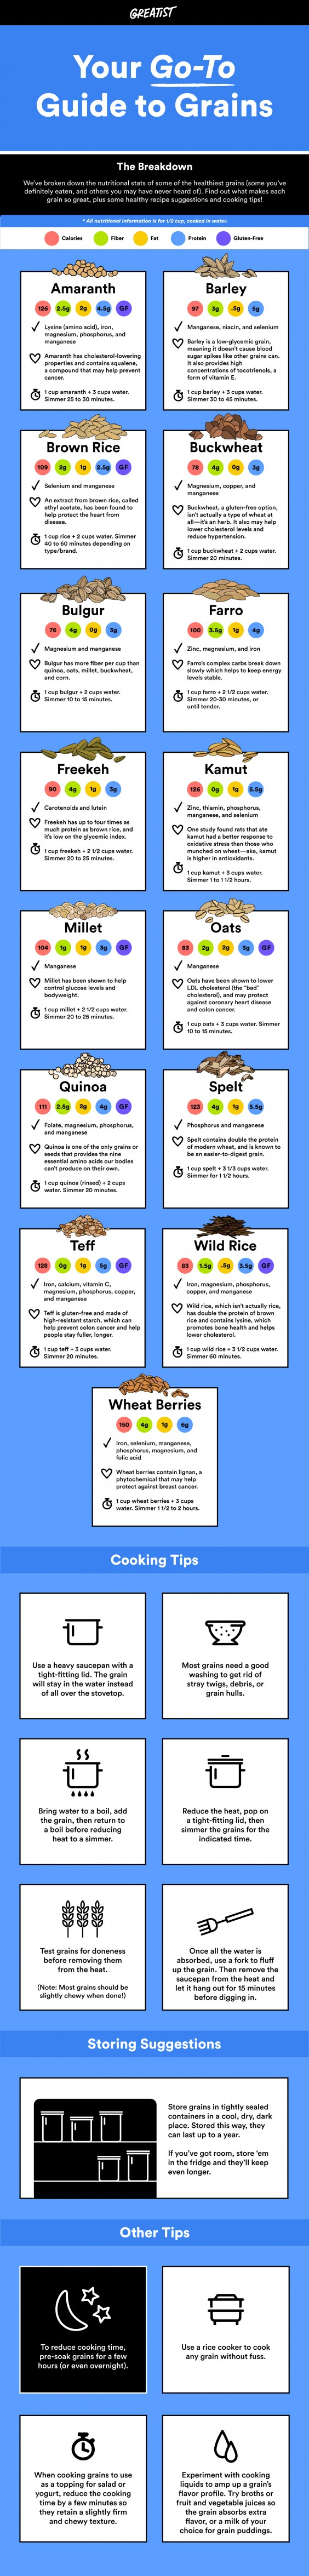 Whole Grains: A Guide to Cooking Healthy Grains